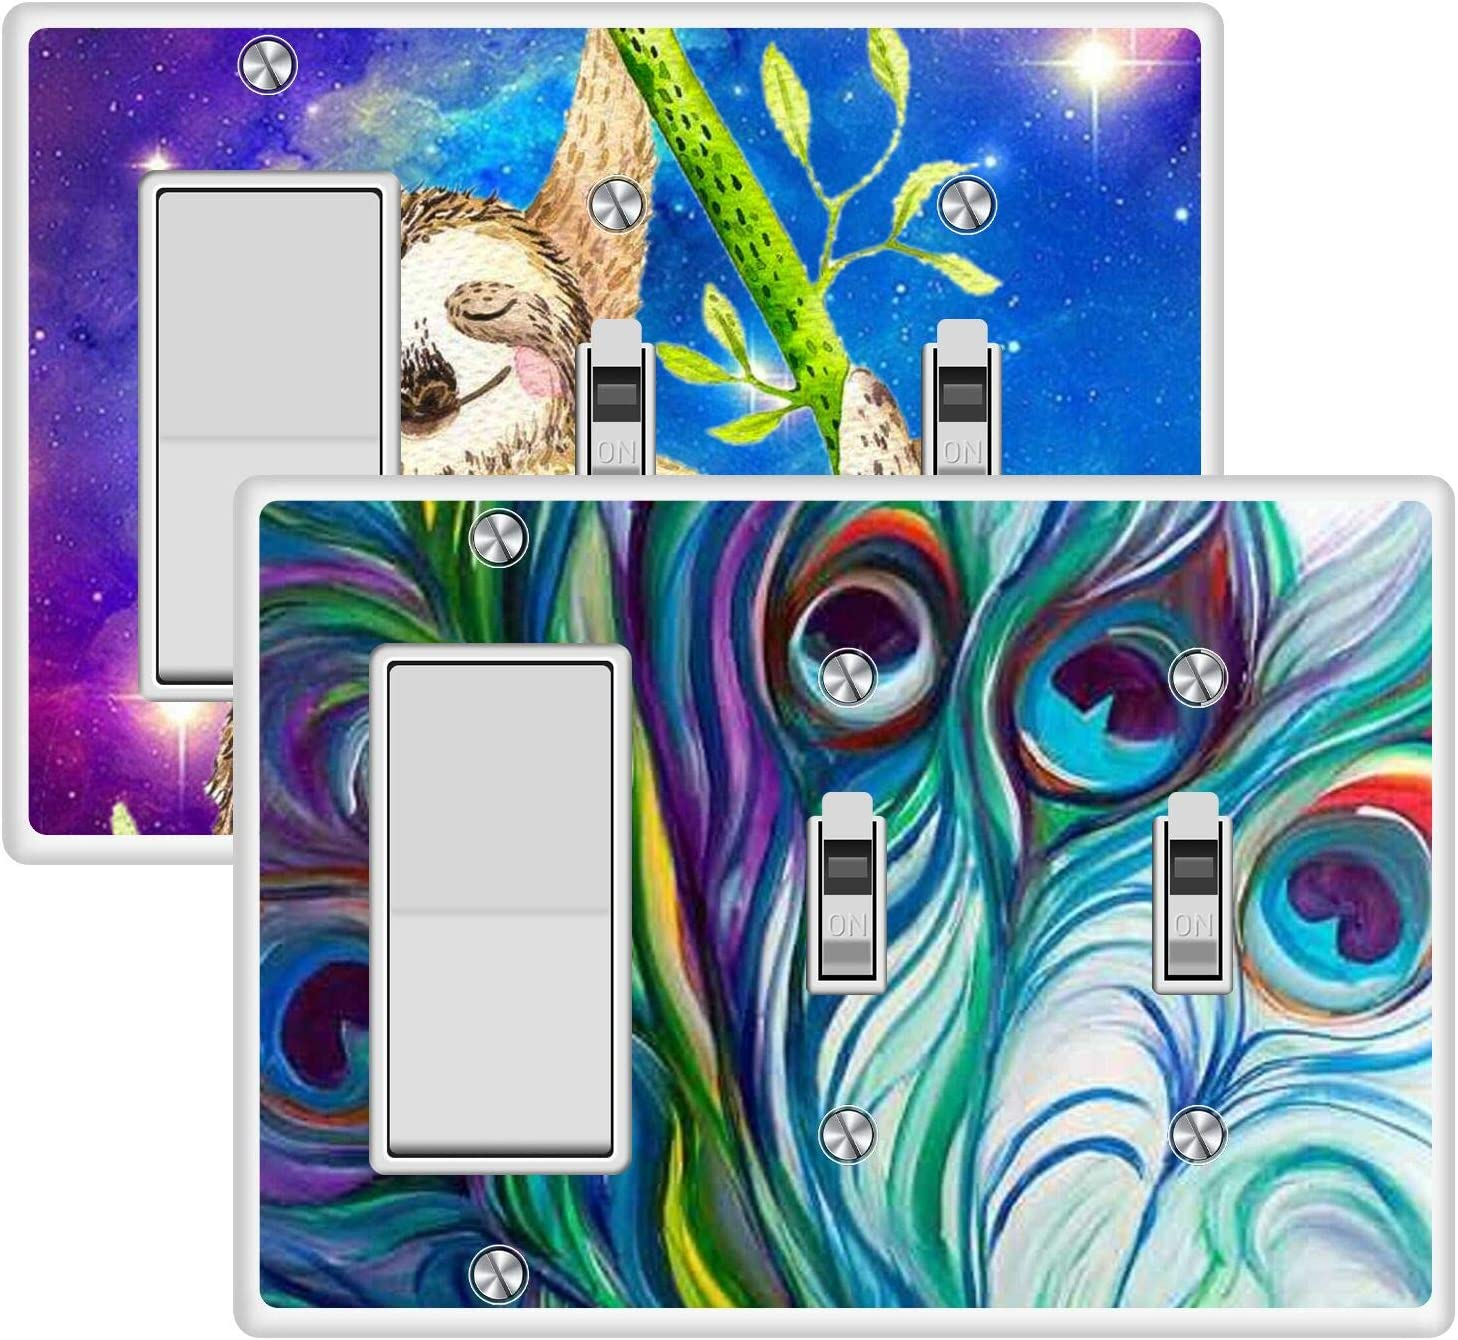 KANGHAR Square Single Decor+Double Toggle White Electrical Outlet Cover Plates Sloth Bear Mom and Kid Peacock Feather Wall Plates for Outlets